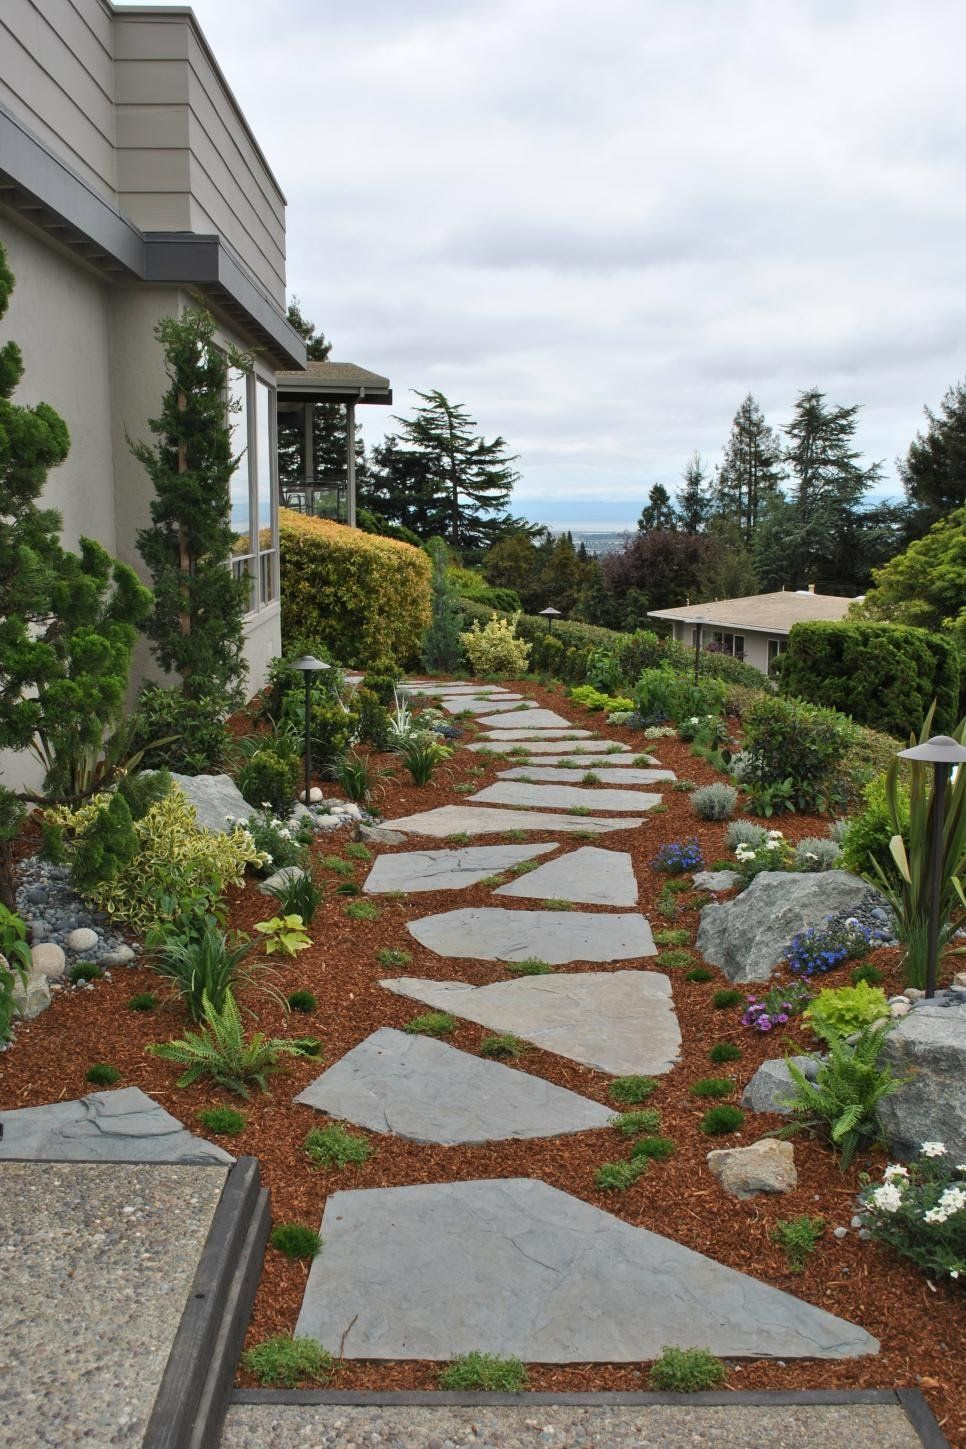 10 Ways to Landscape Your Yard-Without Grass!8 | Landscape ...